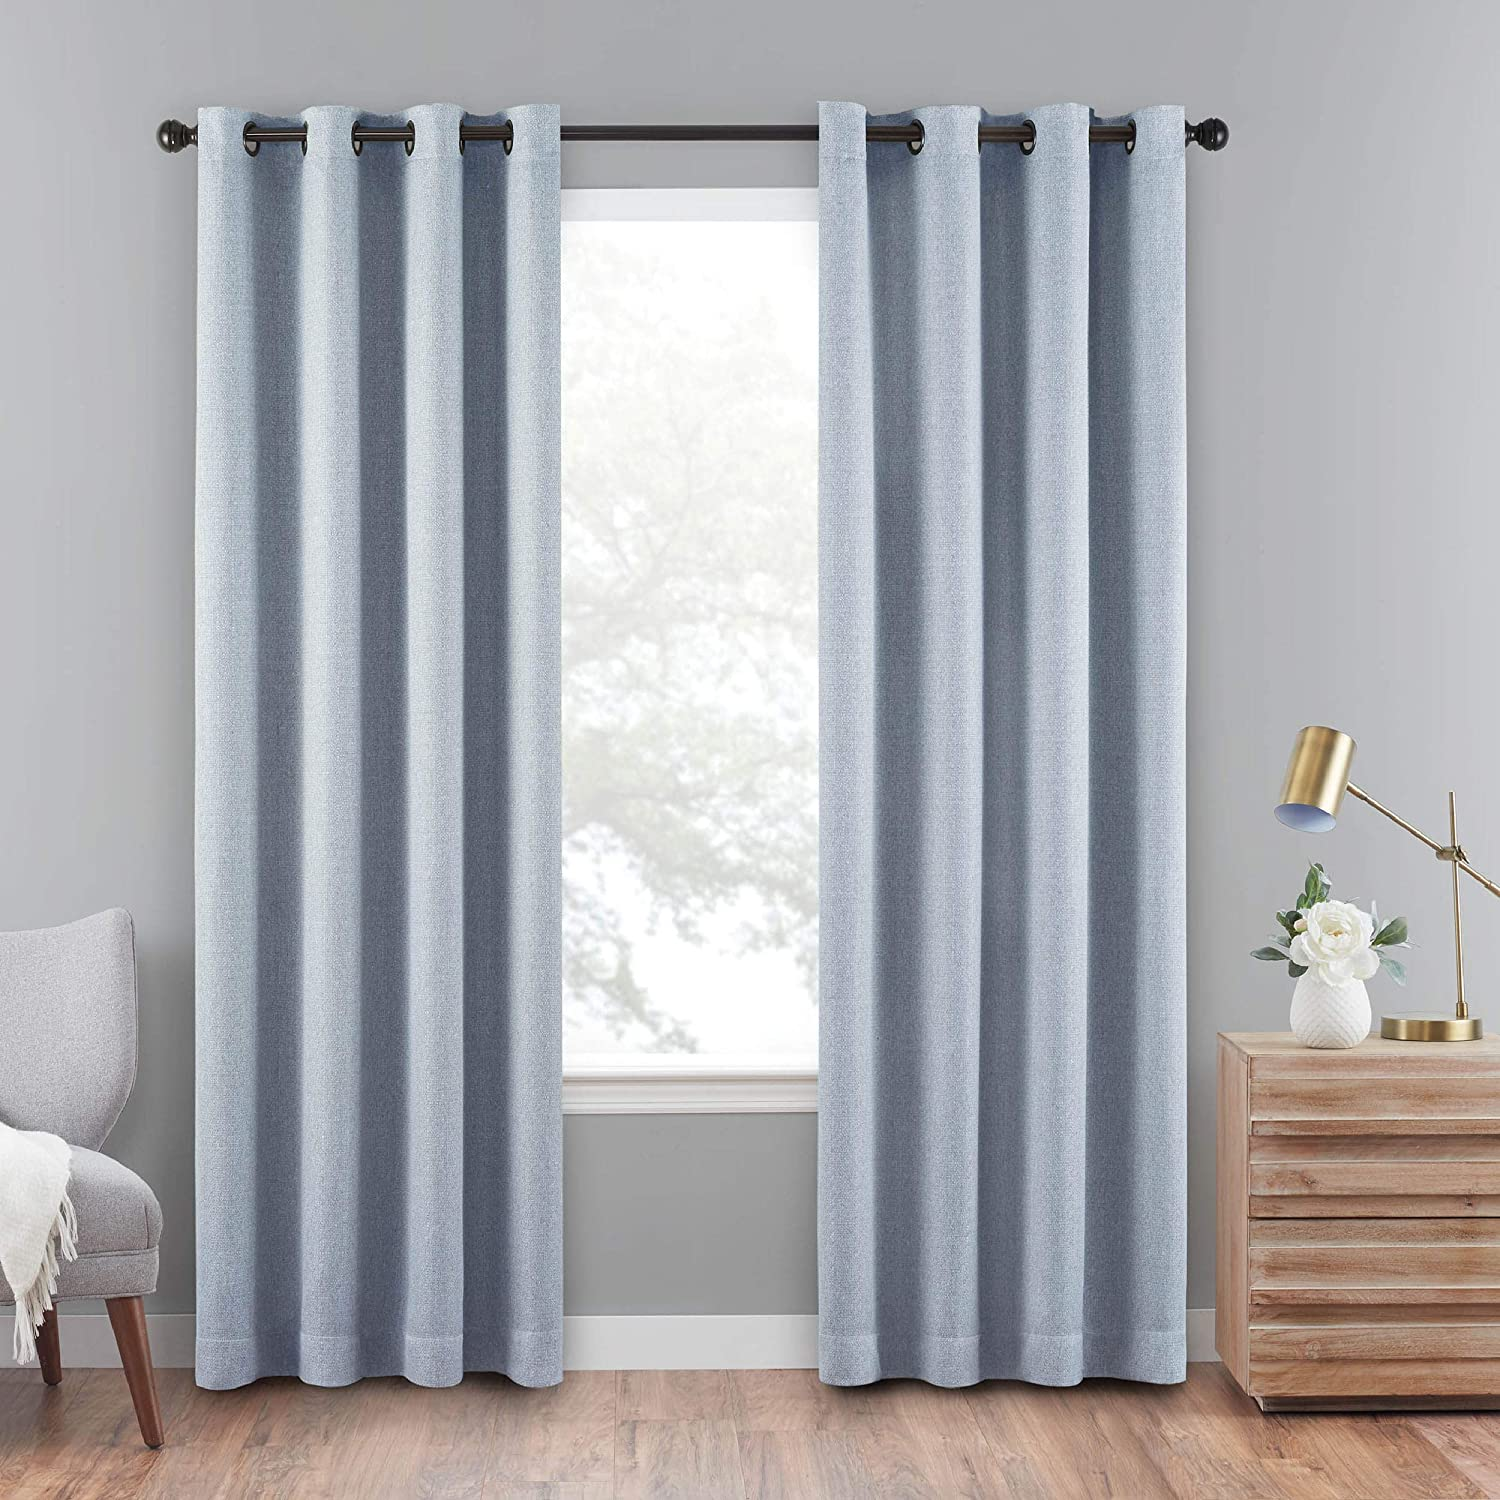 Eclipse Cara Grommet Top Curtains for Panel Dedication Single 50